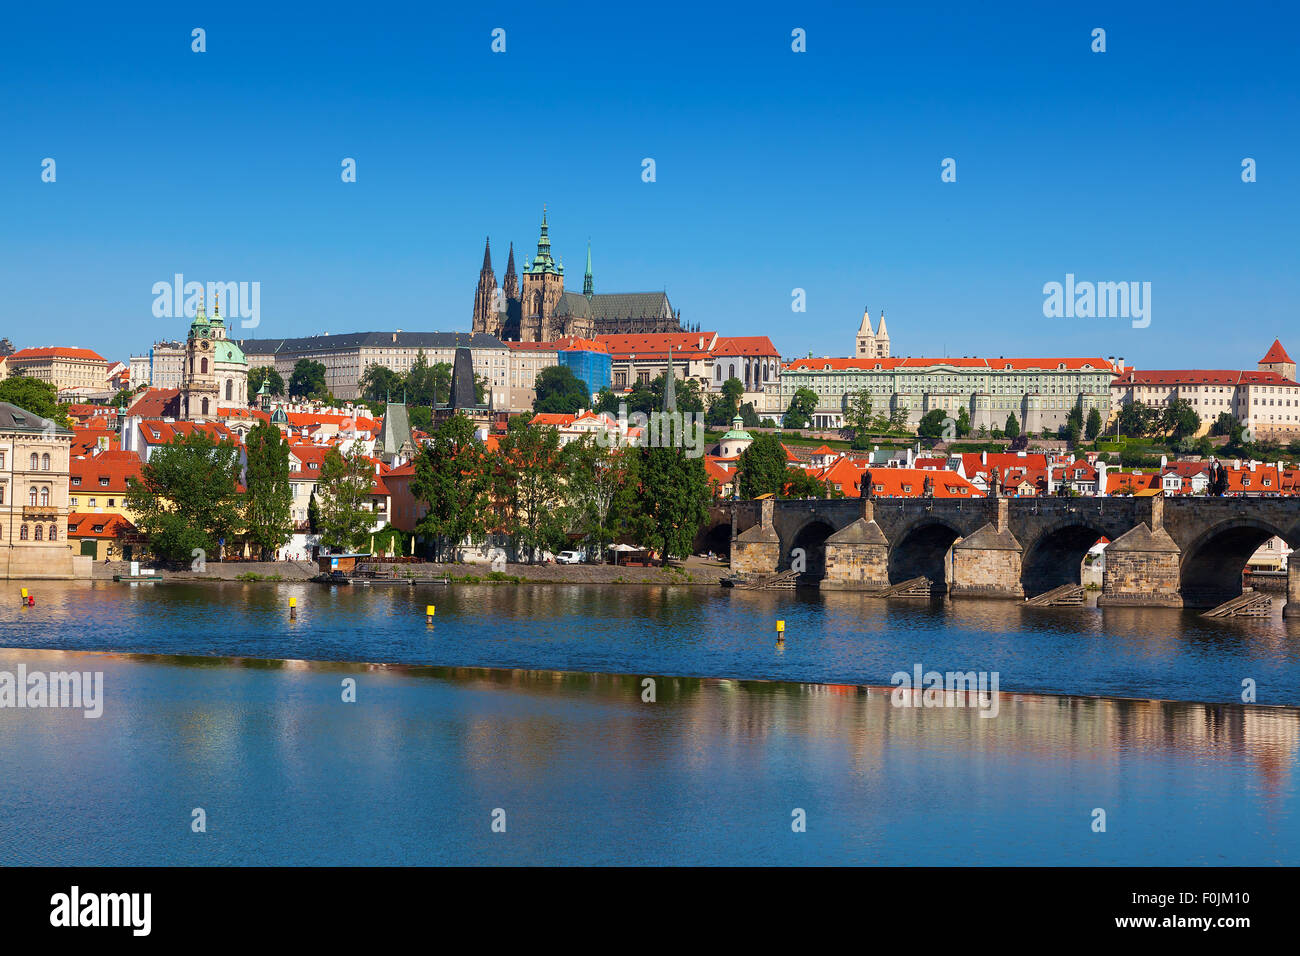 View across the Vltava River in Prague with Charles Bridge and the Castle - Stock Image